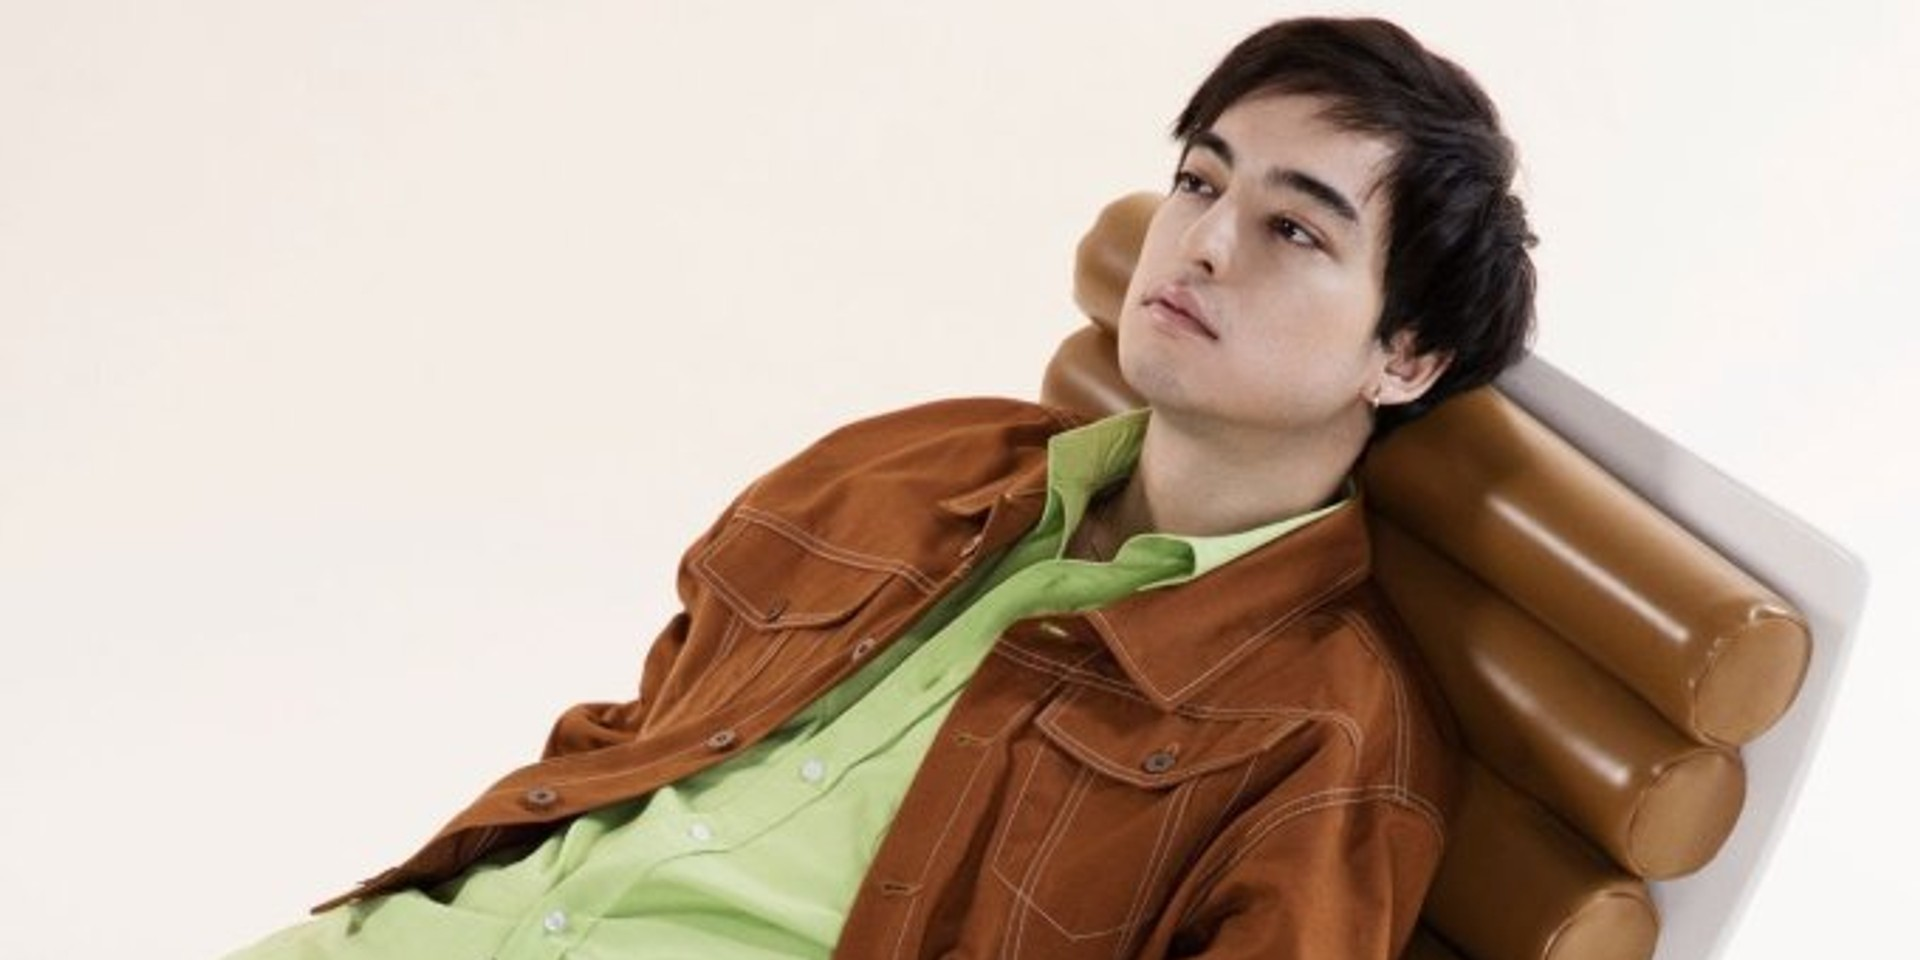 Wanderland adds Joji to 2020 lineup